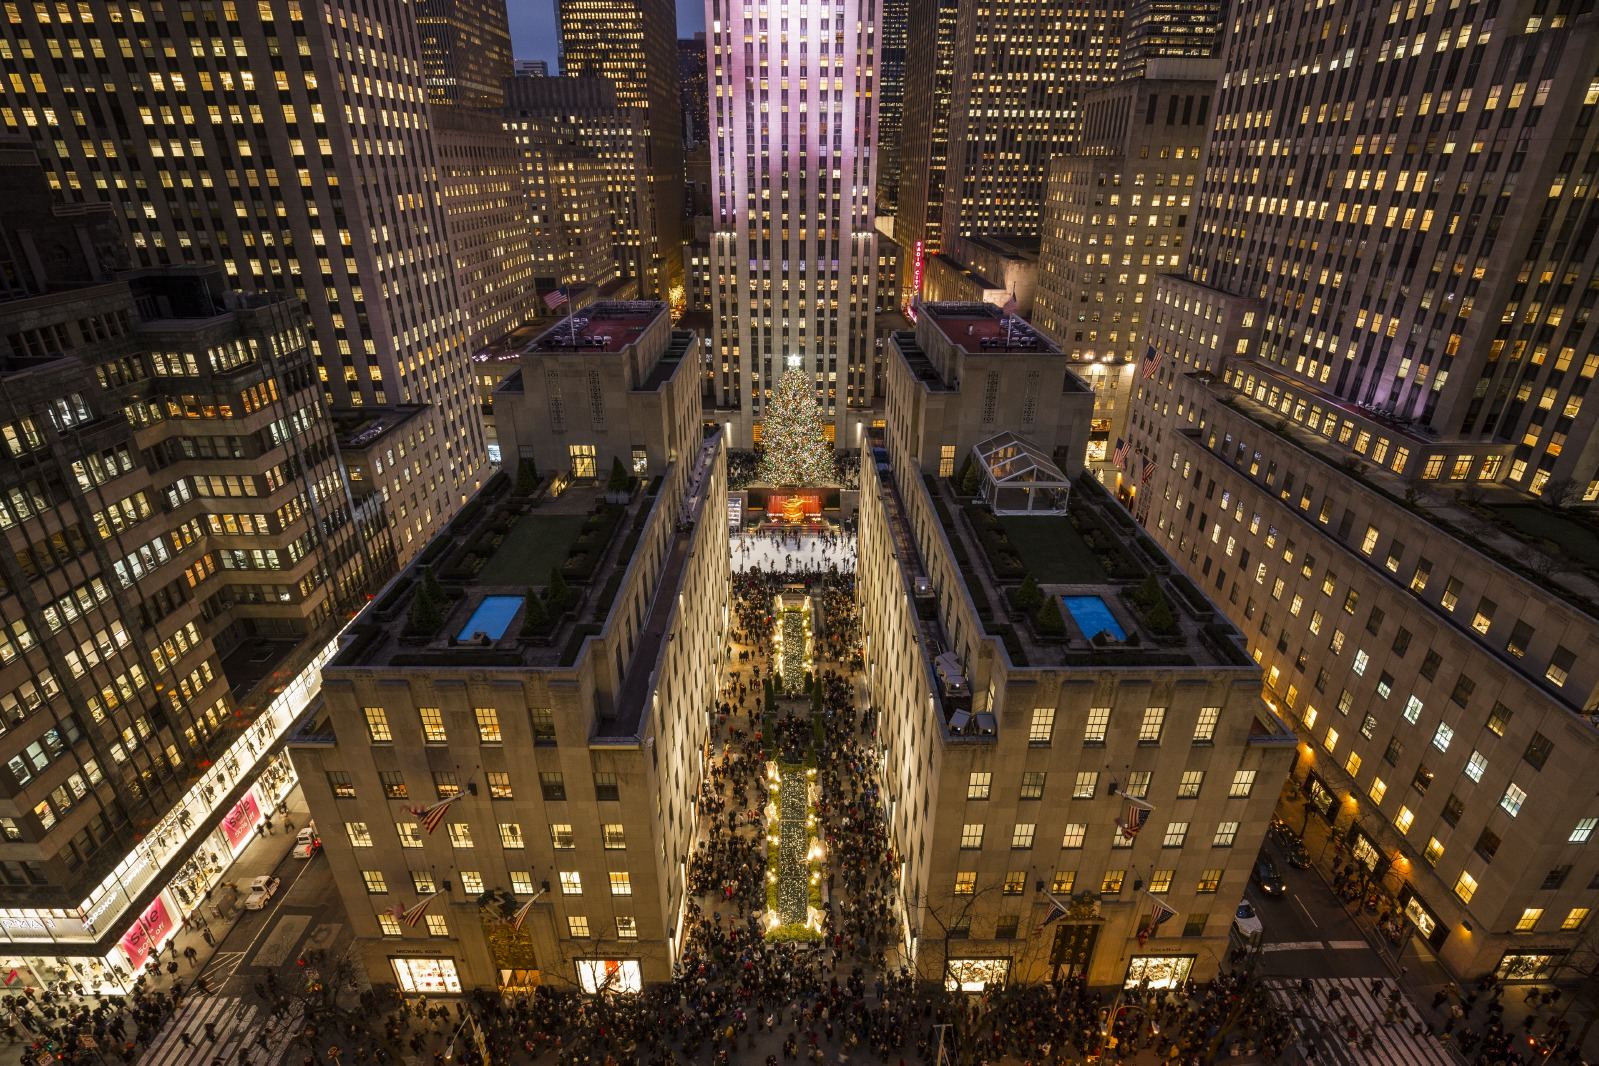 Here's the heart of Rockefeller Center, the Art Deco complex that John D. Rockefeller, Jr., spent the entire decade of the 1930s building with his architect, Raymond Hood. We are looking directly down on the Channel Gardens, which lead pedestrians from Fifth Avenue, left, to the plaza in front of the GE Building (aka 30 Rock), which was being used by a café when this photograph was taken in May, but becomes a skating rink in winter. The small platform with scaffolding, right, where the Christmas tree stands tall in December, is being readied for the installation of a sculpture by Jeff Koons. Some of the buildings have exquisite rooftop gardens kept mostly for the pleasure of people who work in the complex.